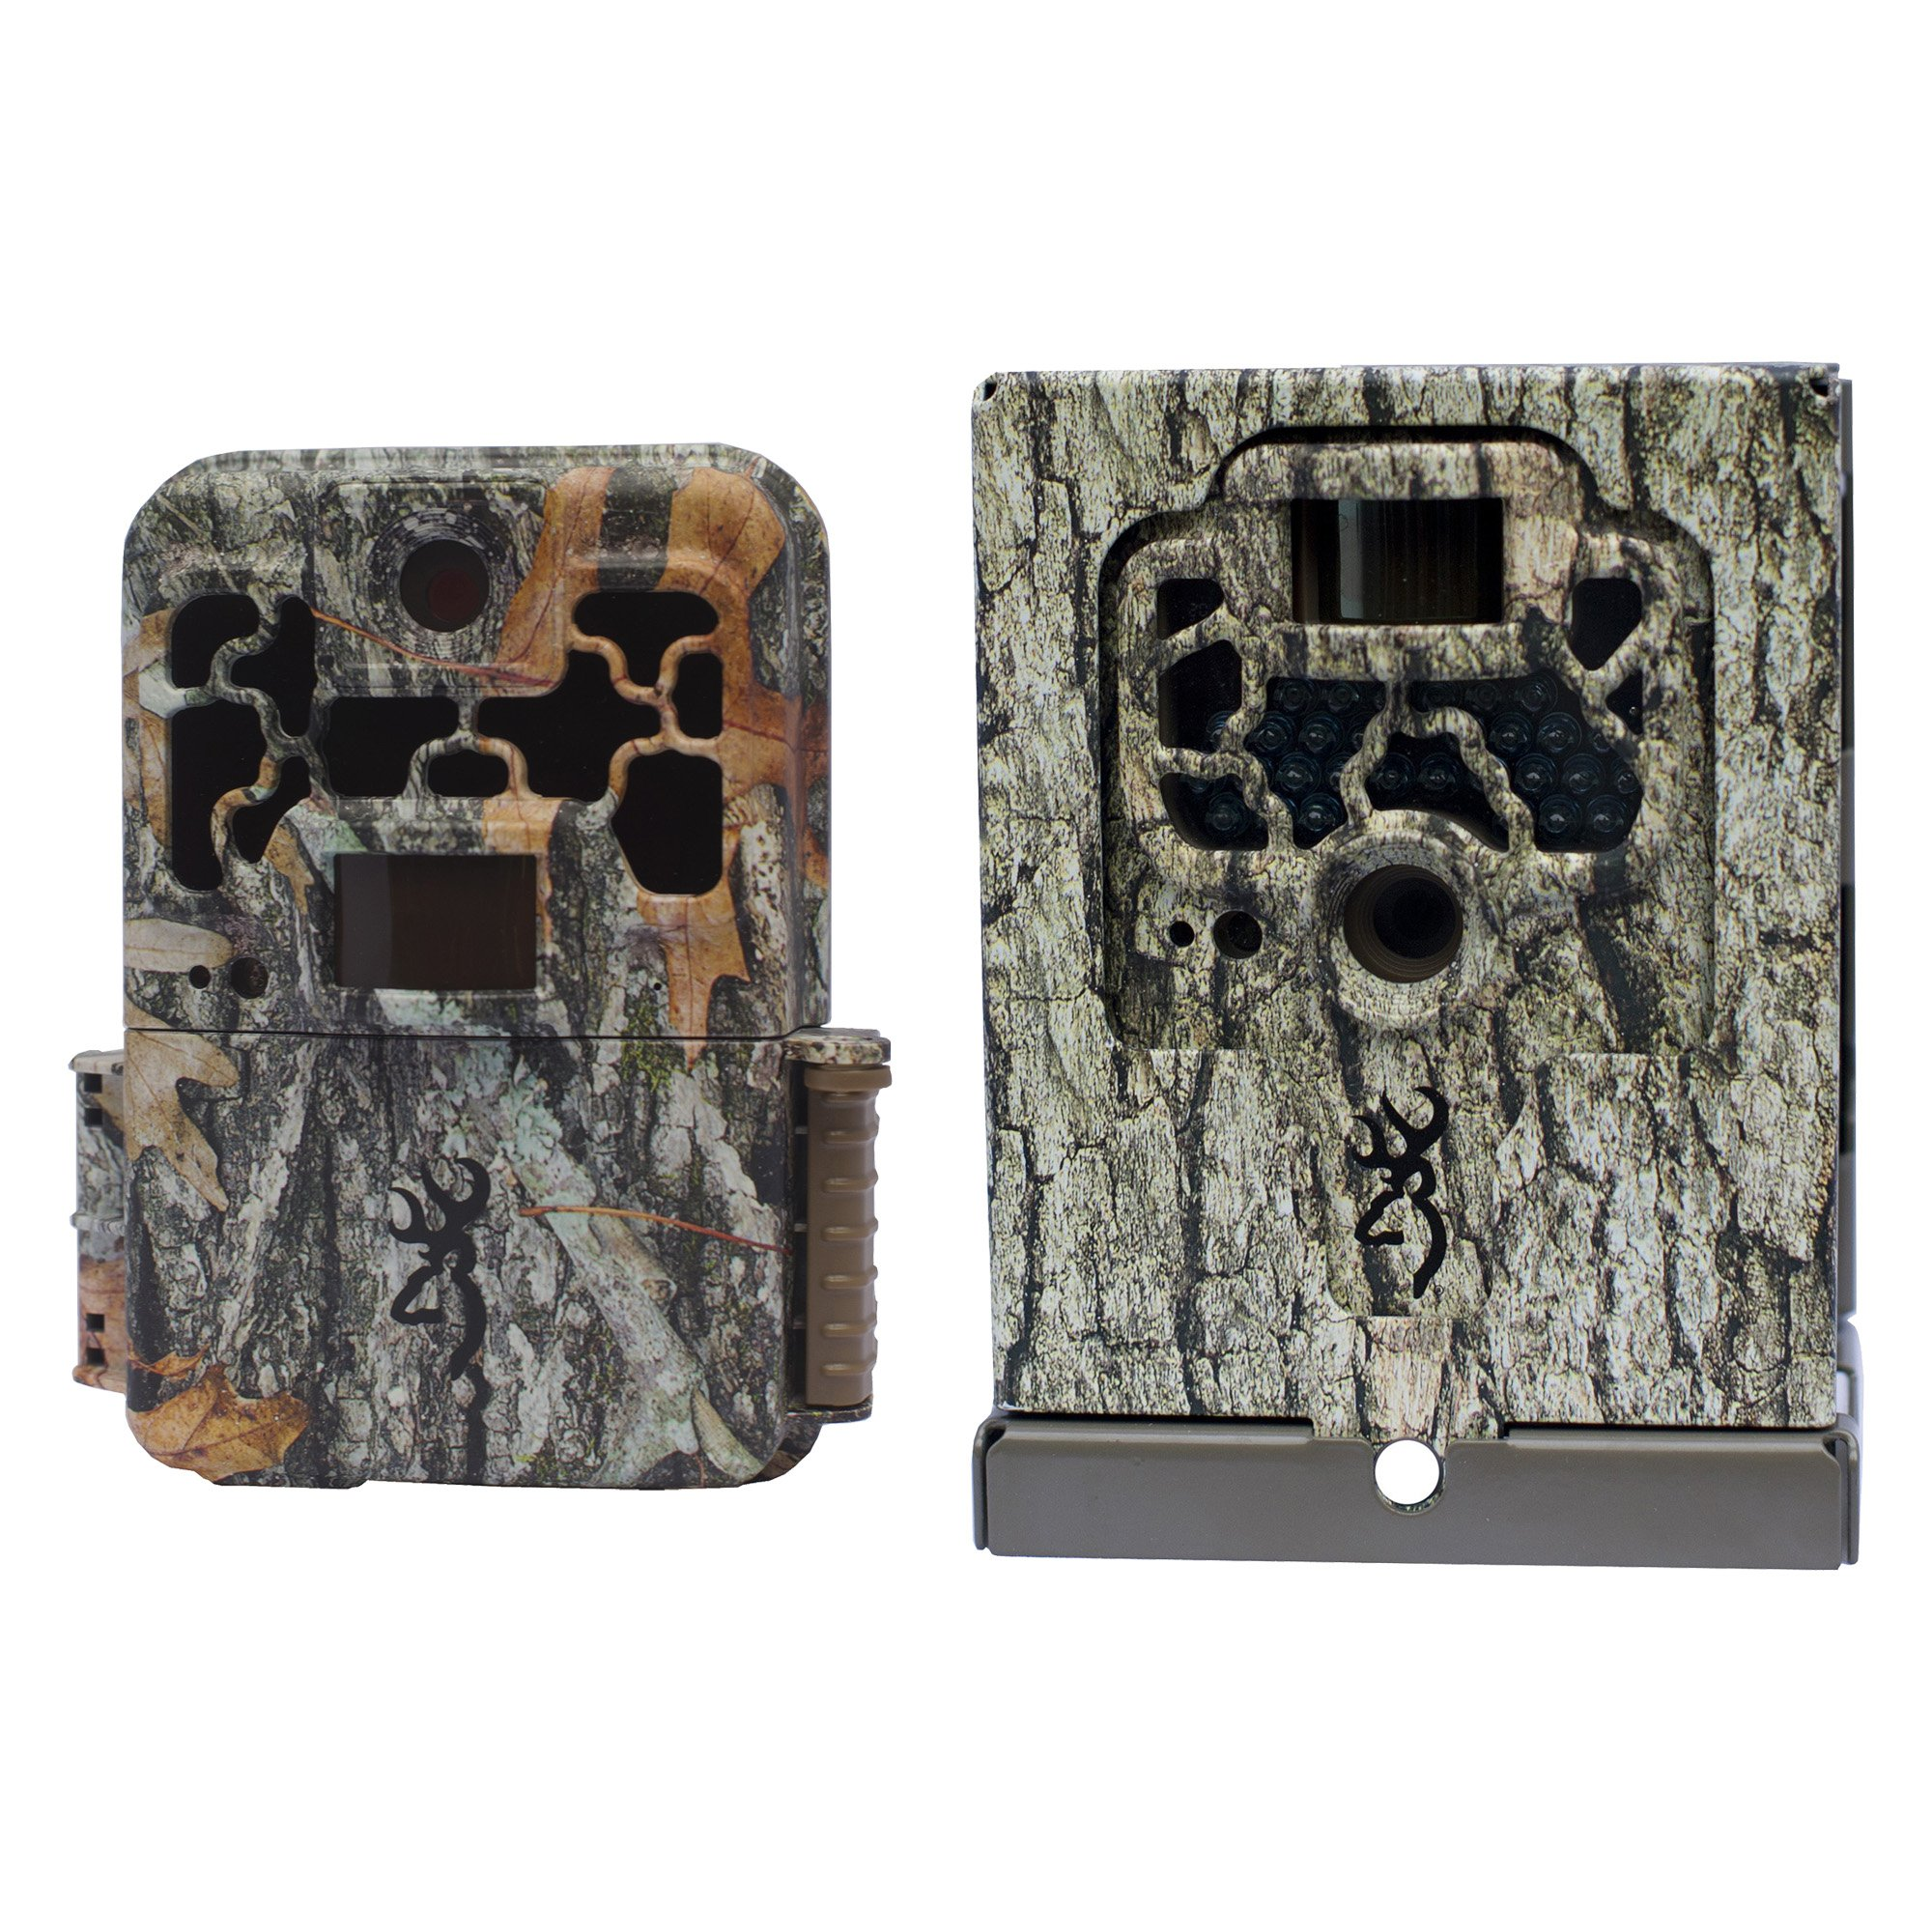 Browning Trail Cameras Spec Ops FHD Extreme 20MP IR Game Camera + Security Case by Browning Trail Cameras